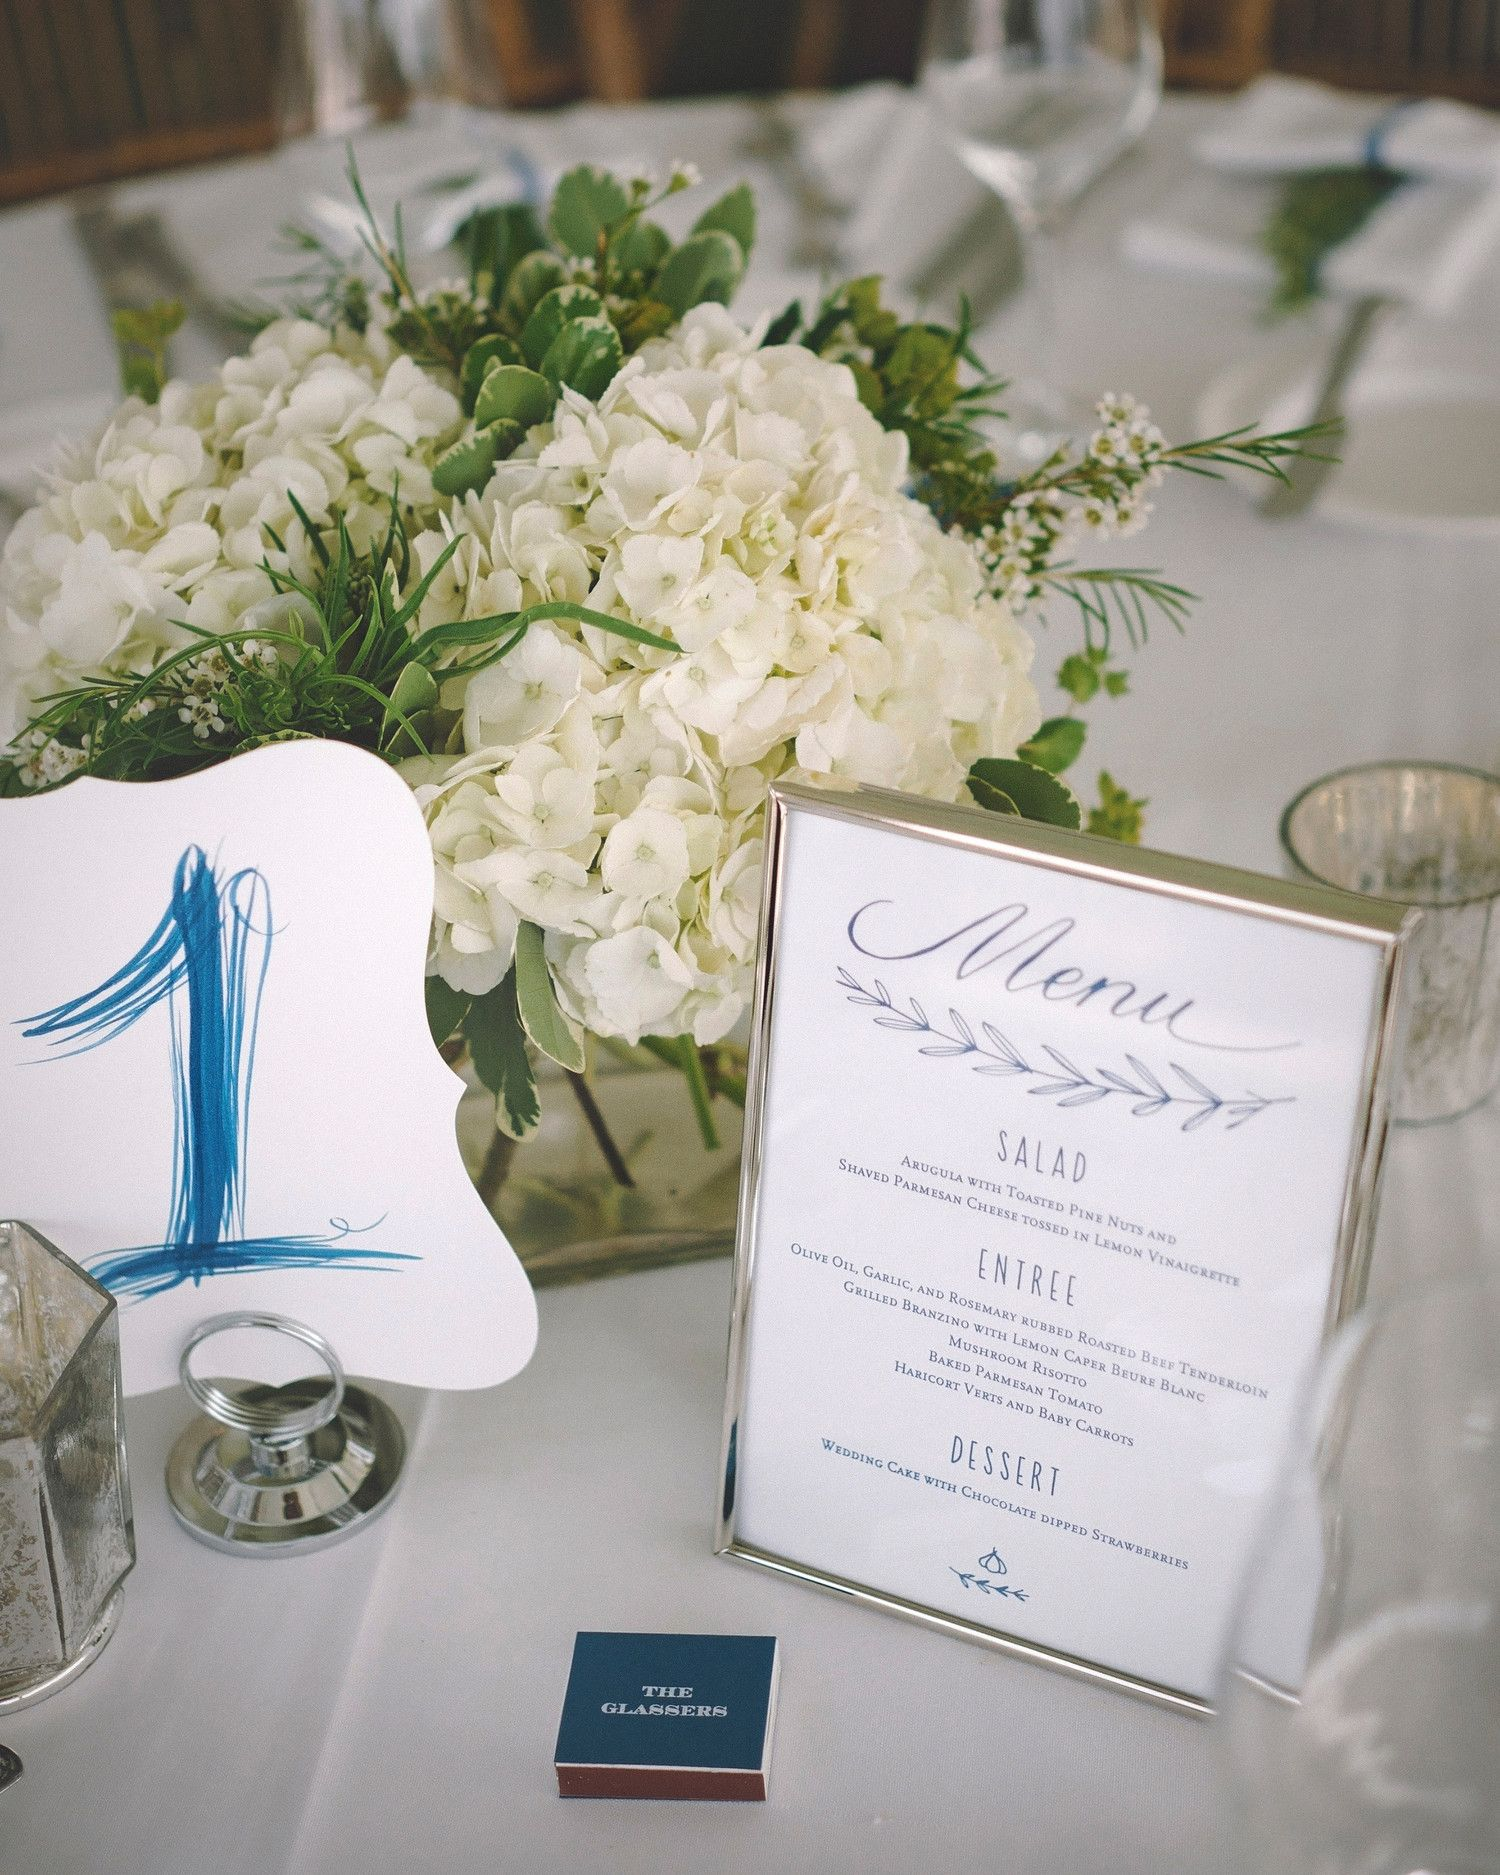 79 White Wedding Centerpieces | Round tables, Wax flowers and Greenery